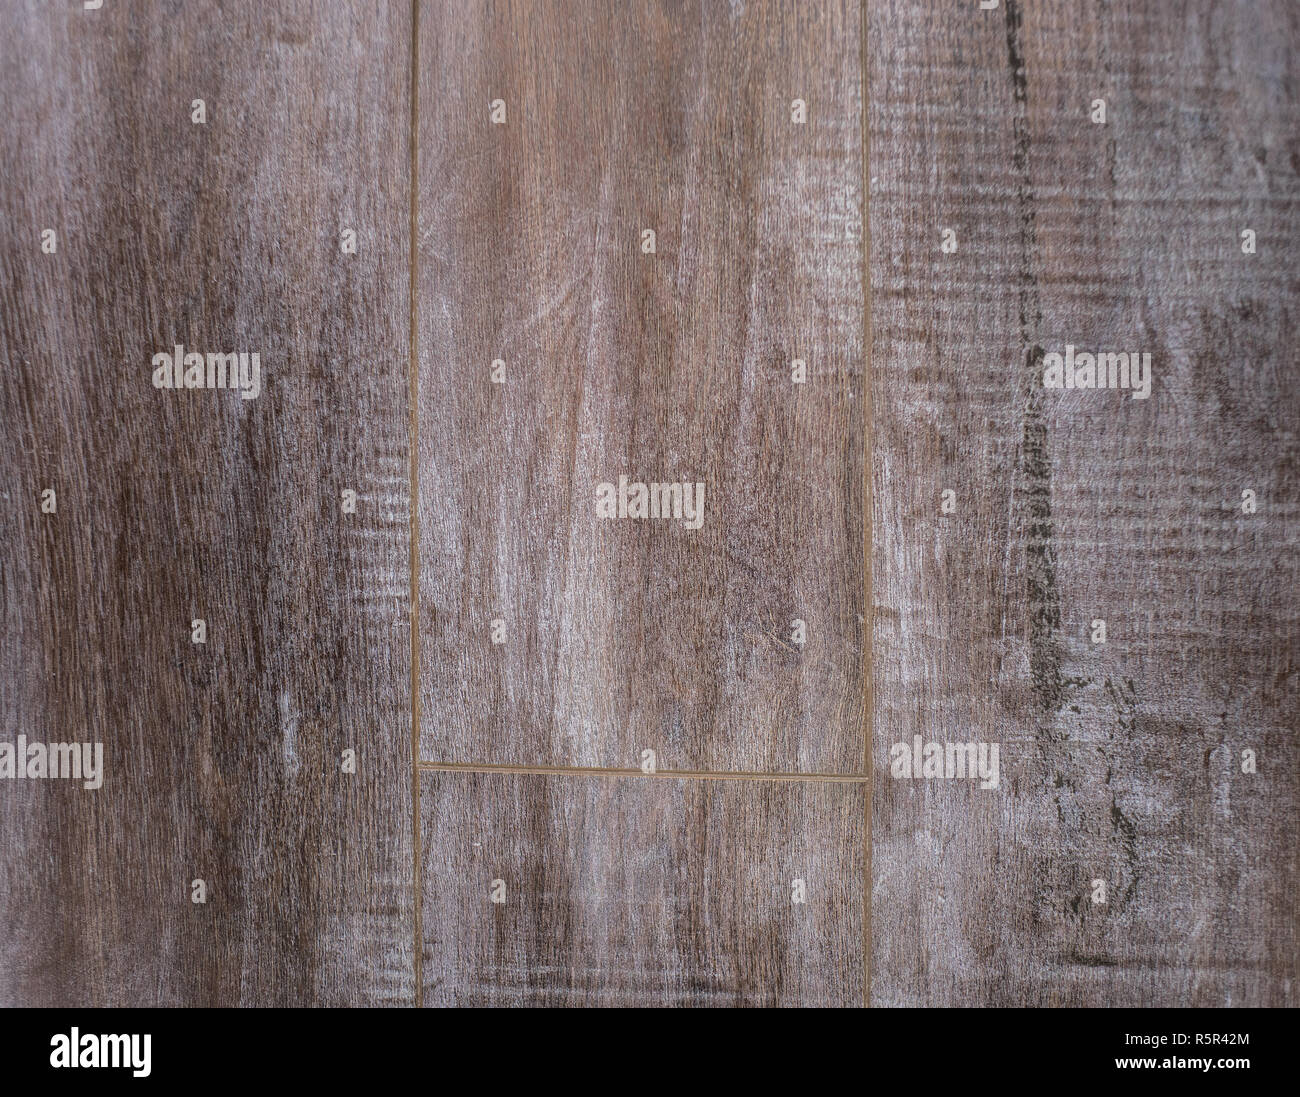 Laminate flooring wooden texture with deep facture - Stock Image